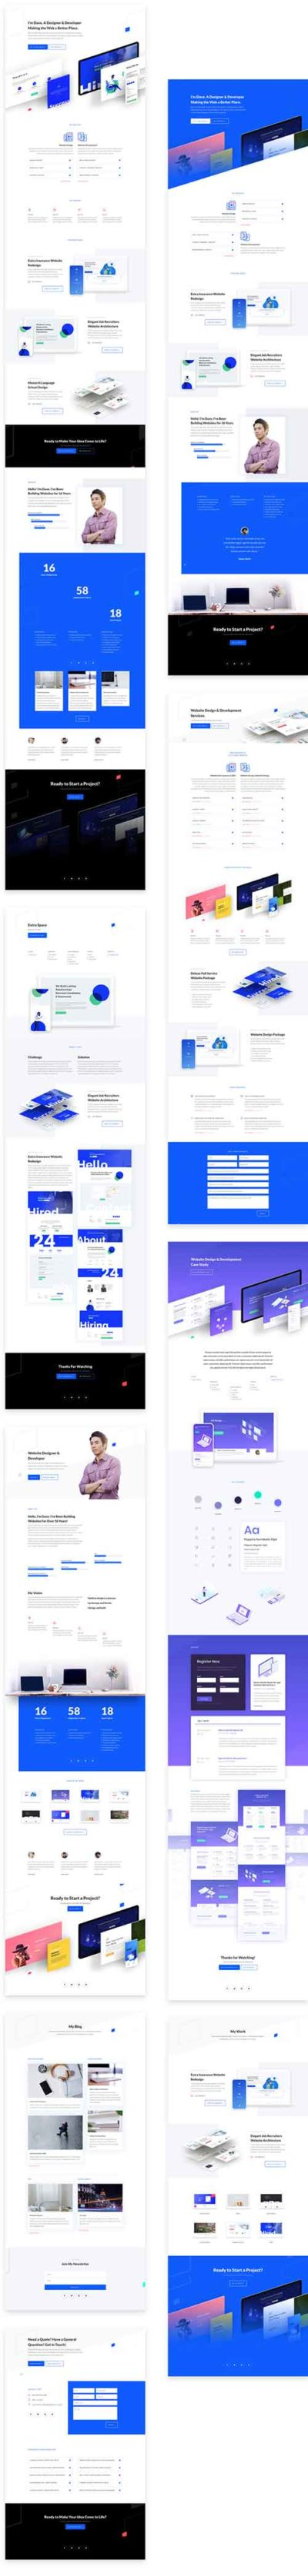 Best Divi Web Design Layouts 2019 Divi Theme Layouts